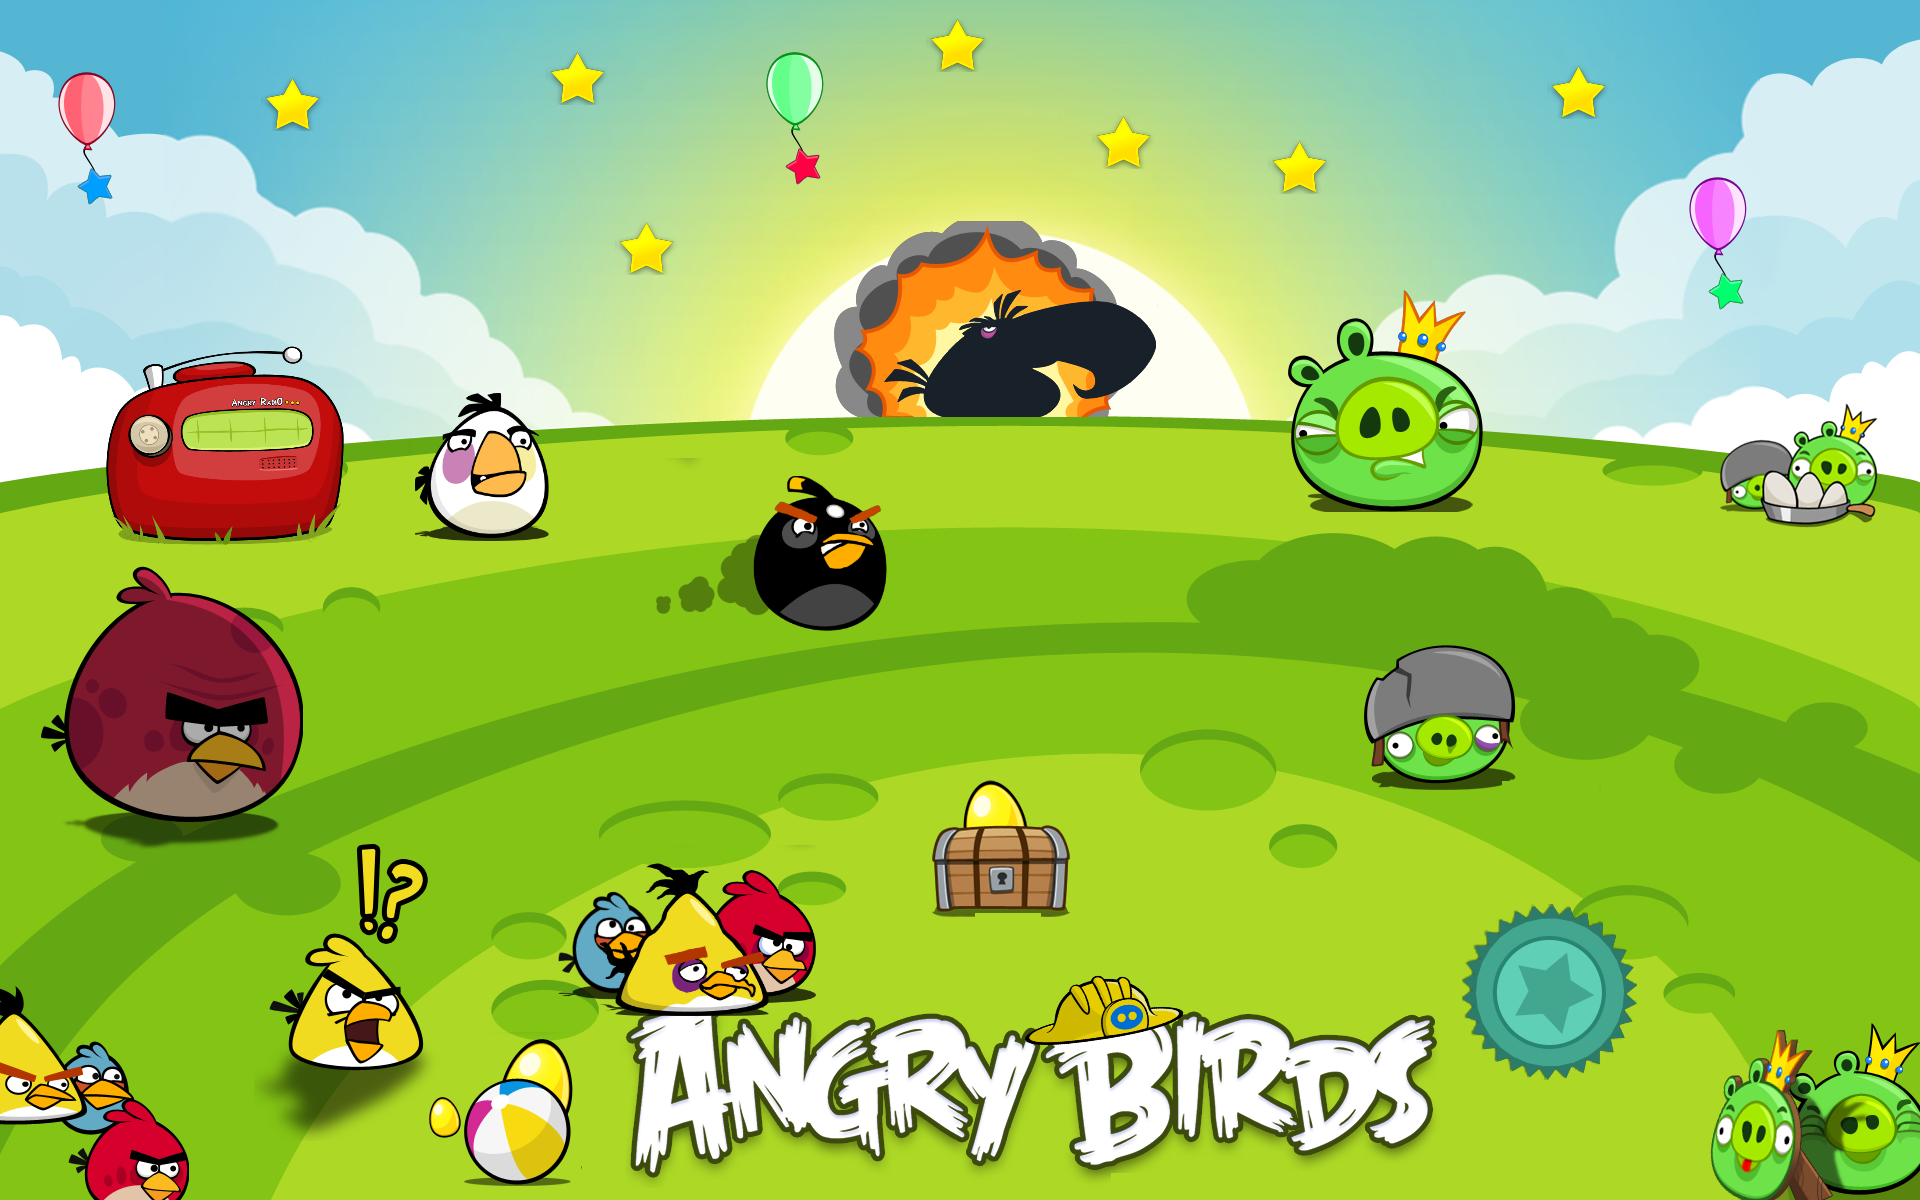 ANGRY BIRDS game discussion and analysis. - Page 2 Angry_birds_wallpaper_by_vistafreddy-d39wj2z